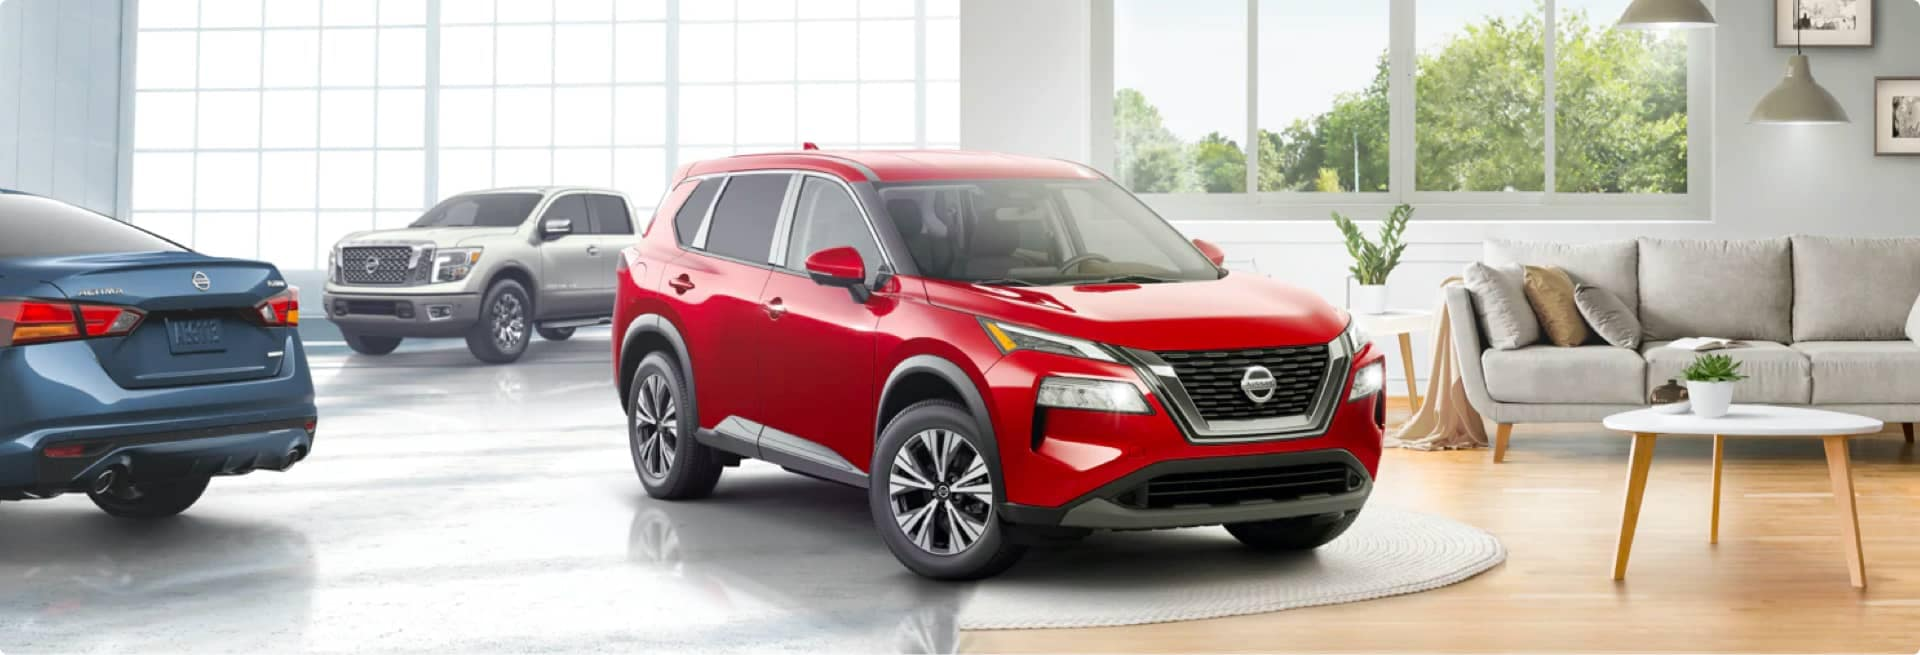 Luther Nissan SEO Image - Red Nissan SUV in the Showroom